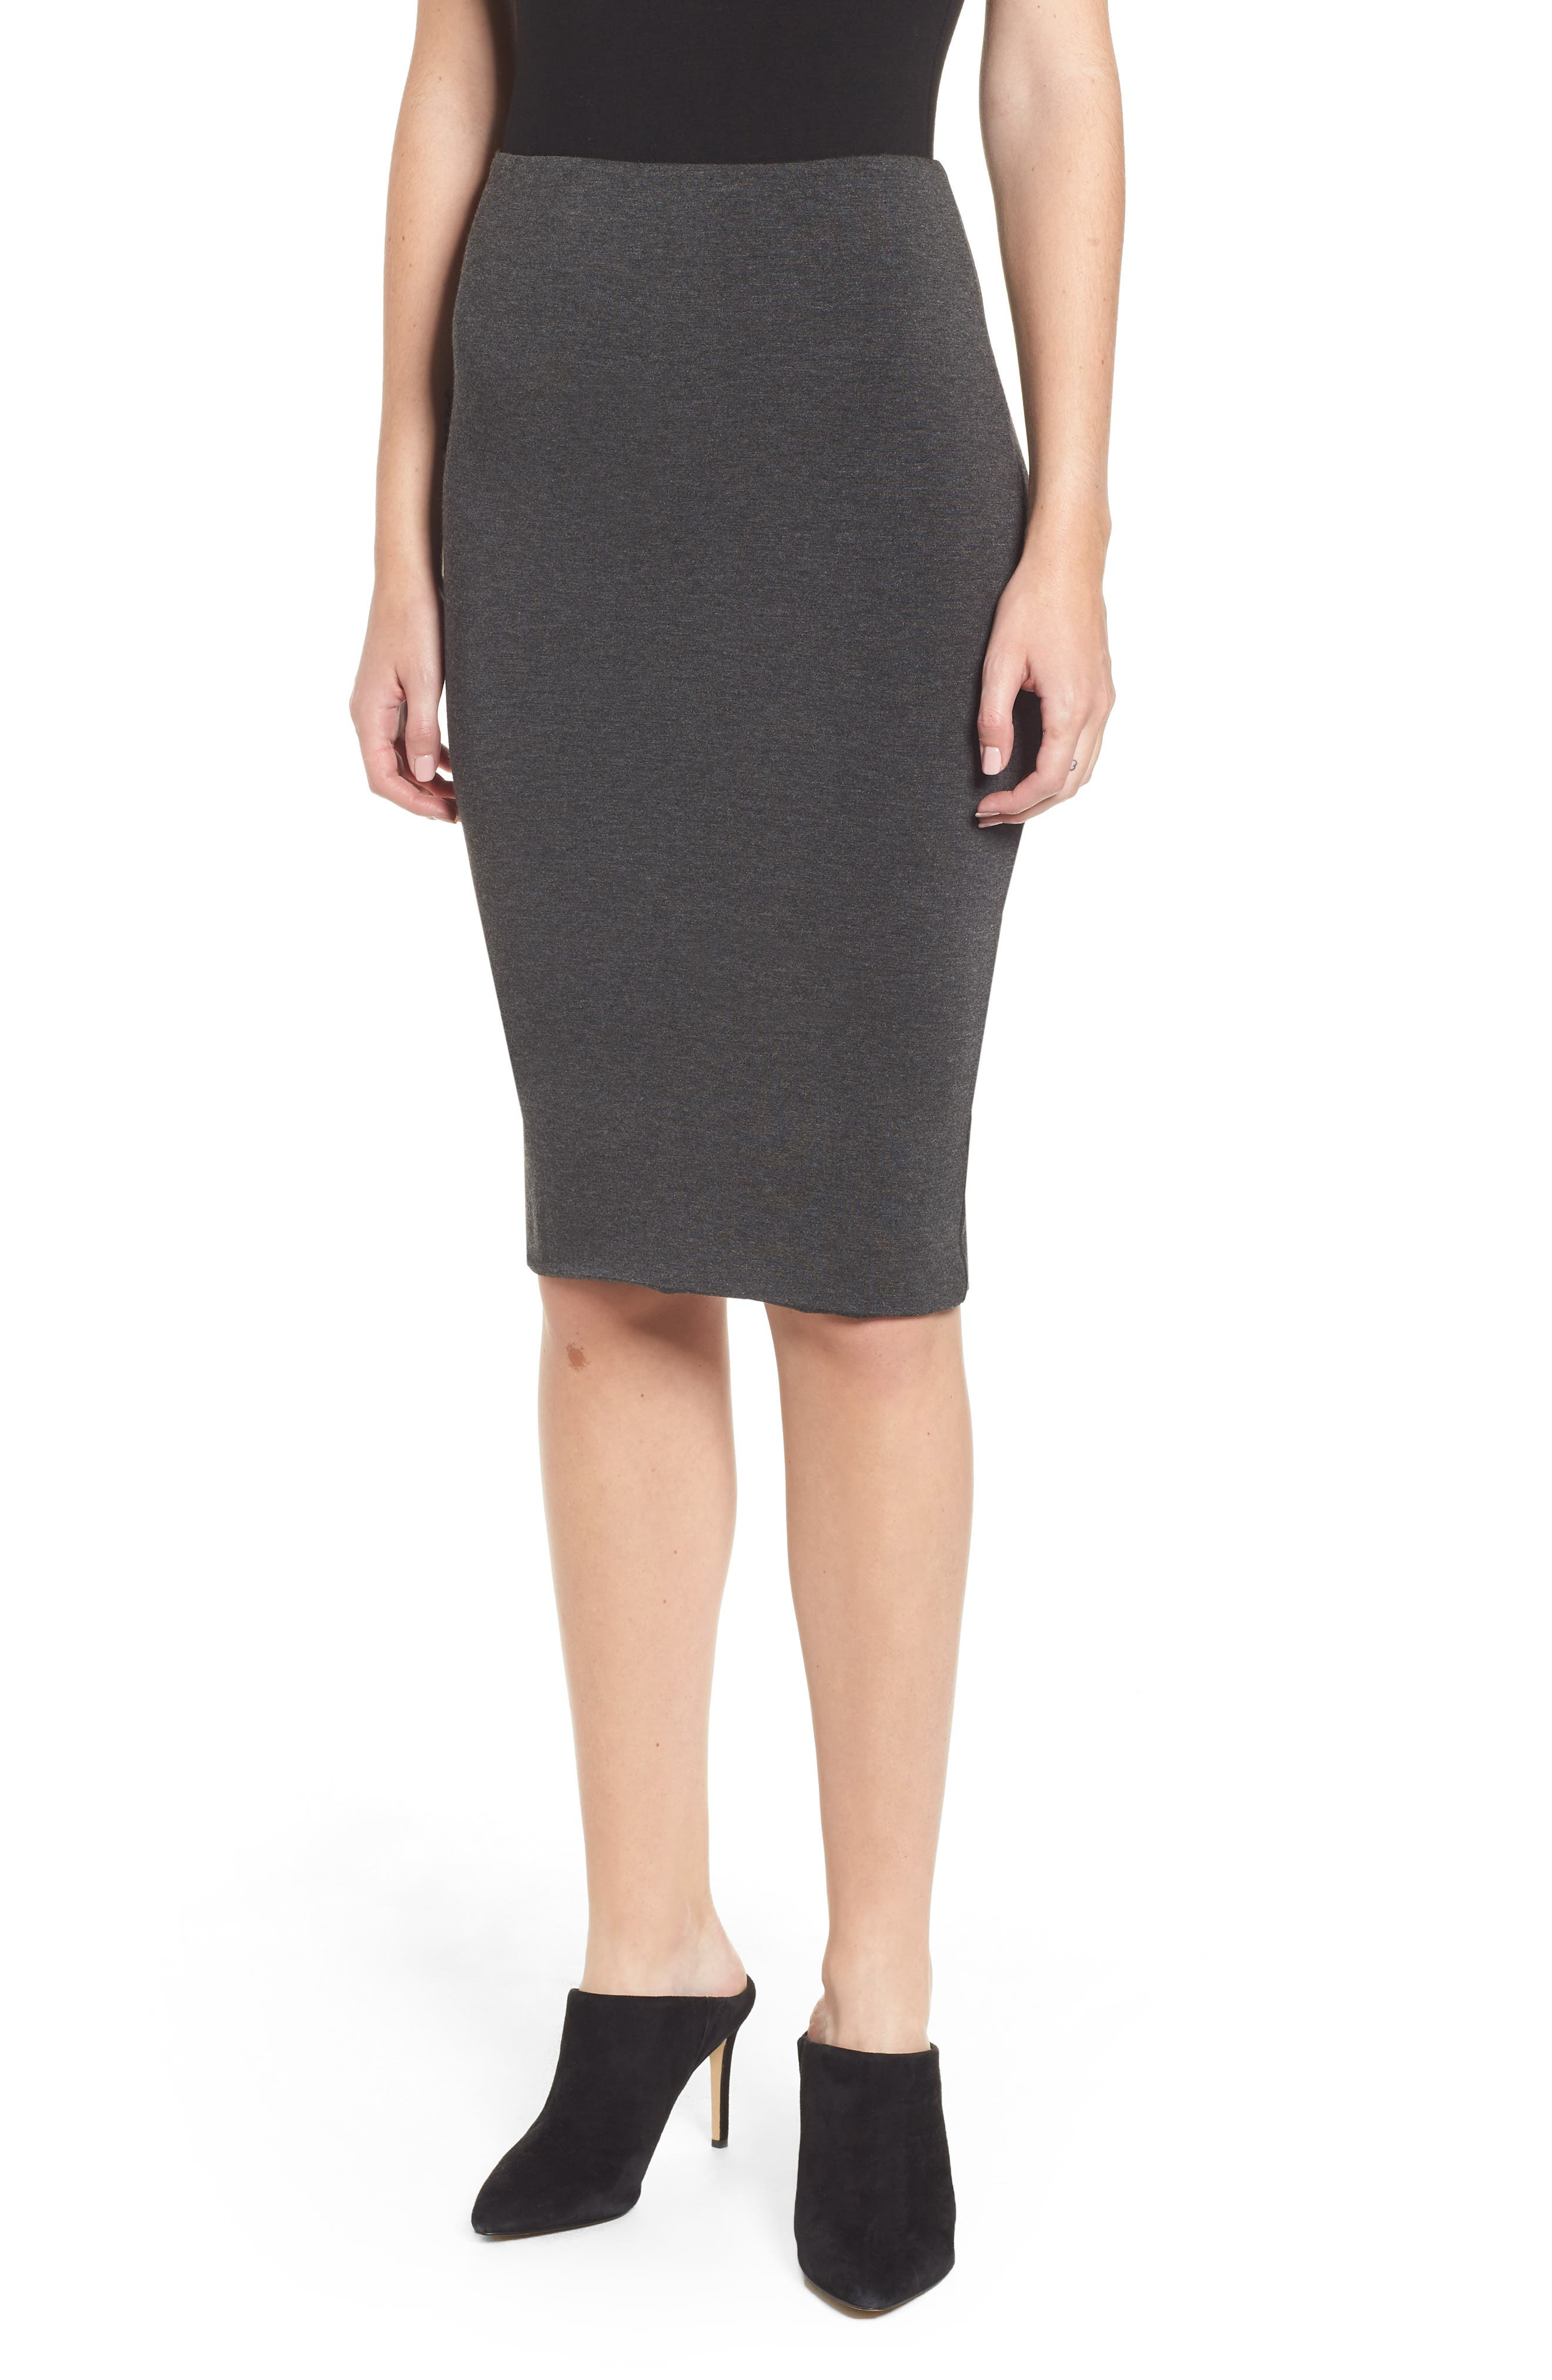 AMOUR VERT 'Yuma' Stretch Knit Skirt, Main, color, ANTHRACITE